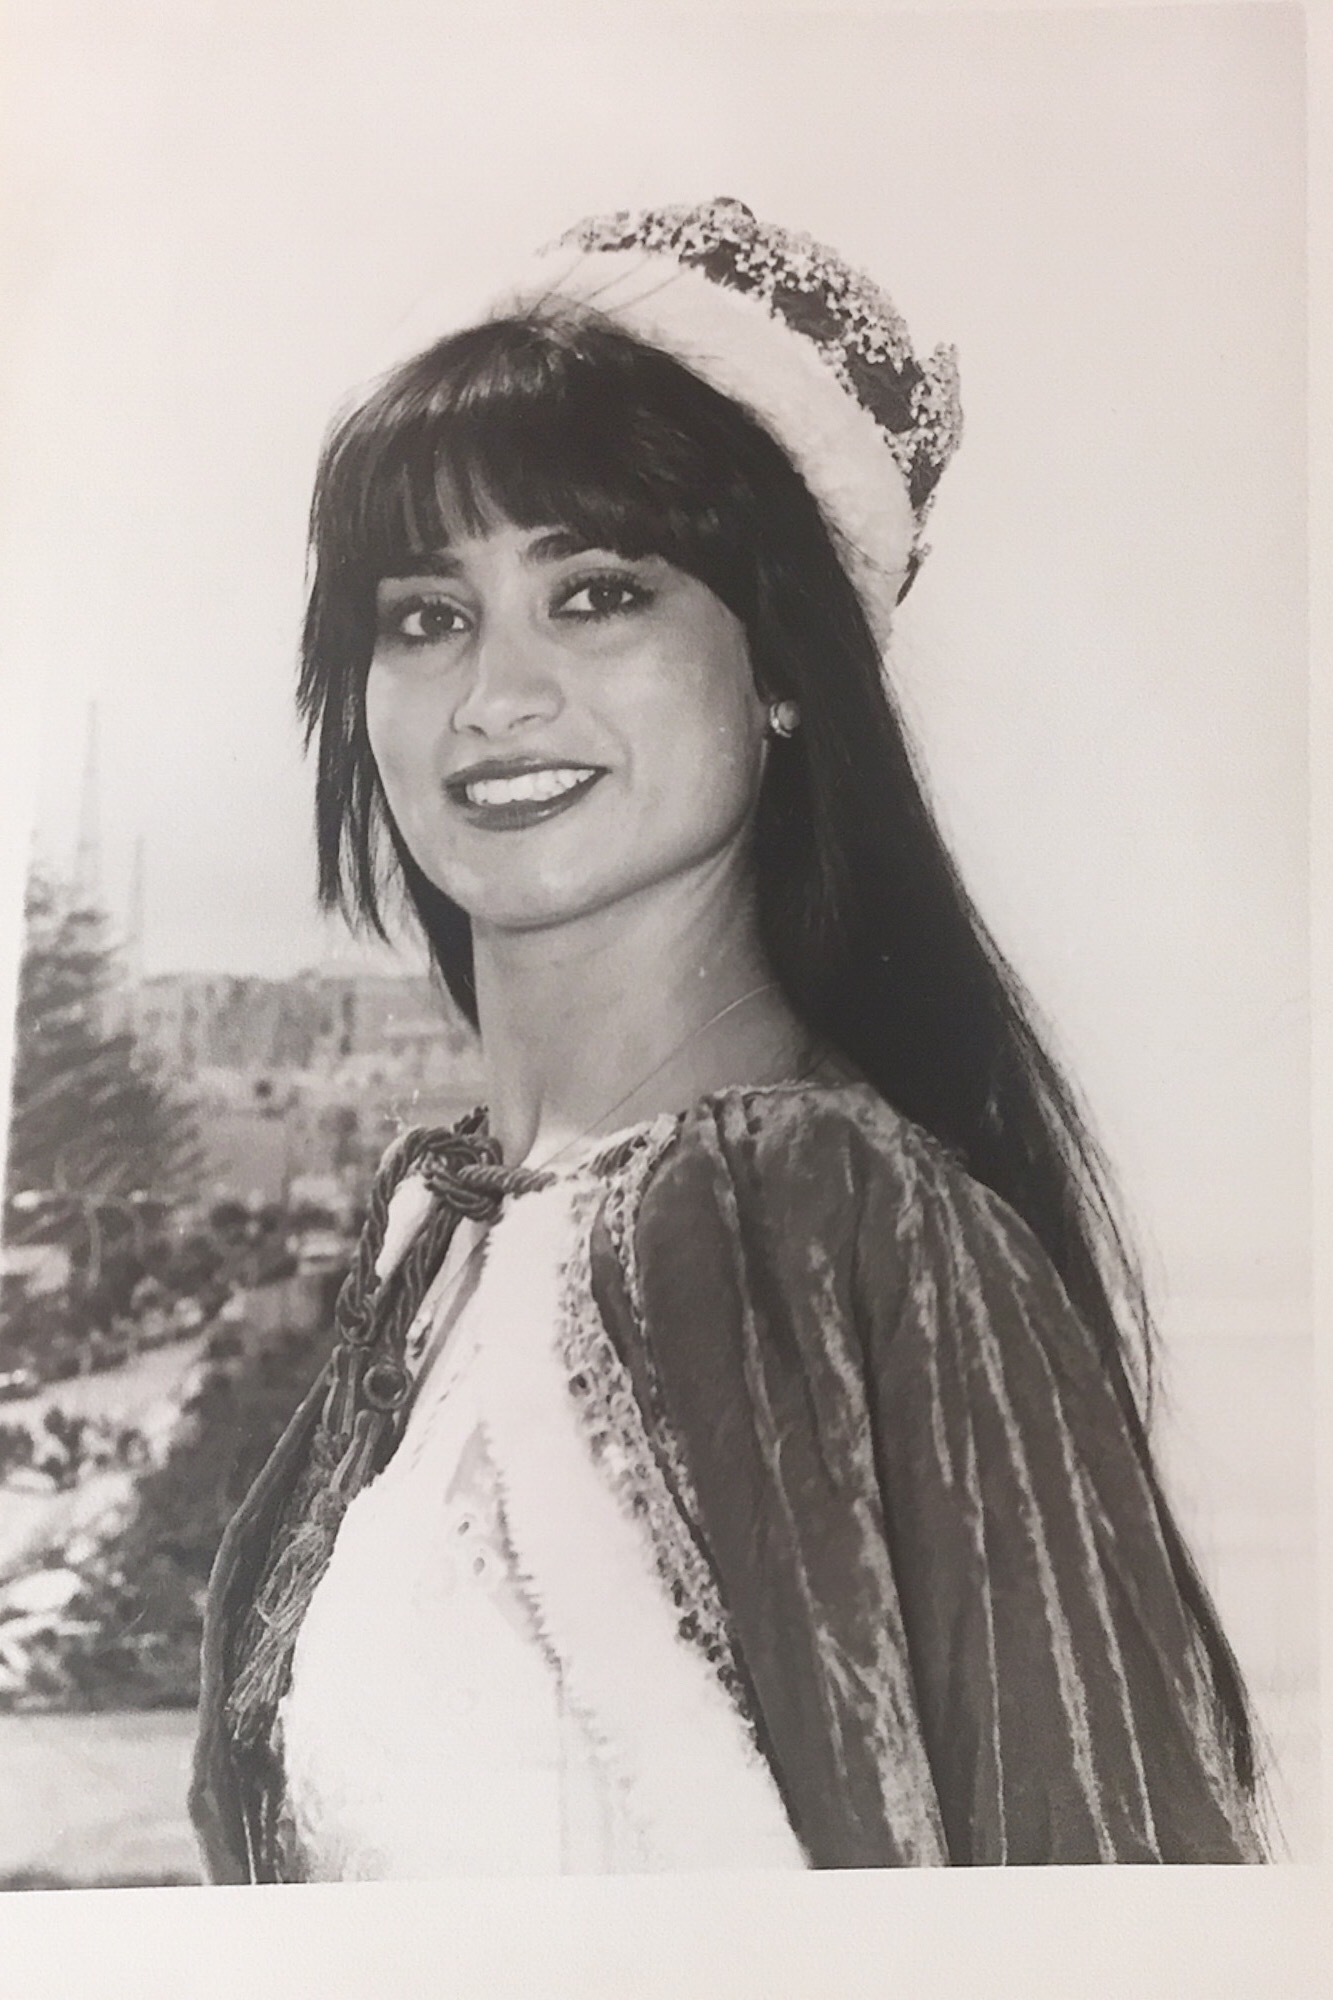 41. Miss Malta 1980 Dragonara Palace